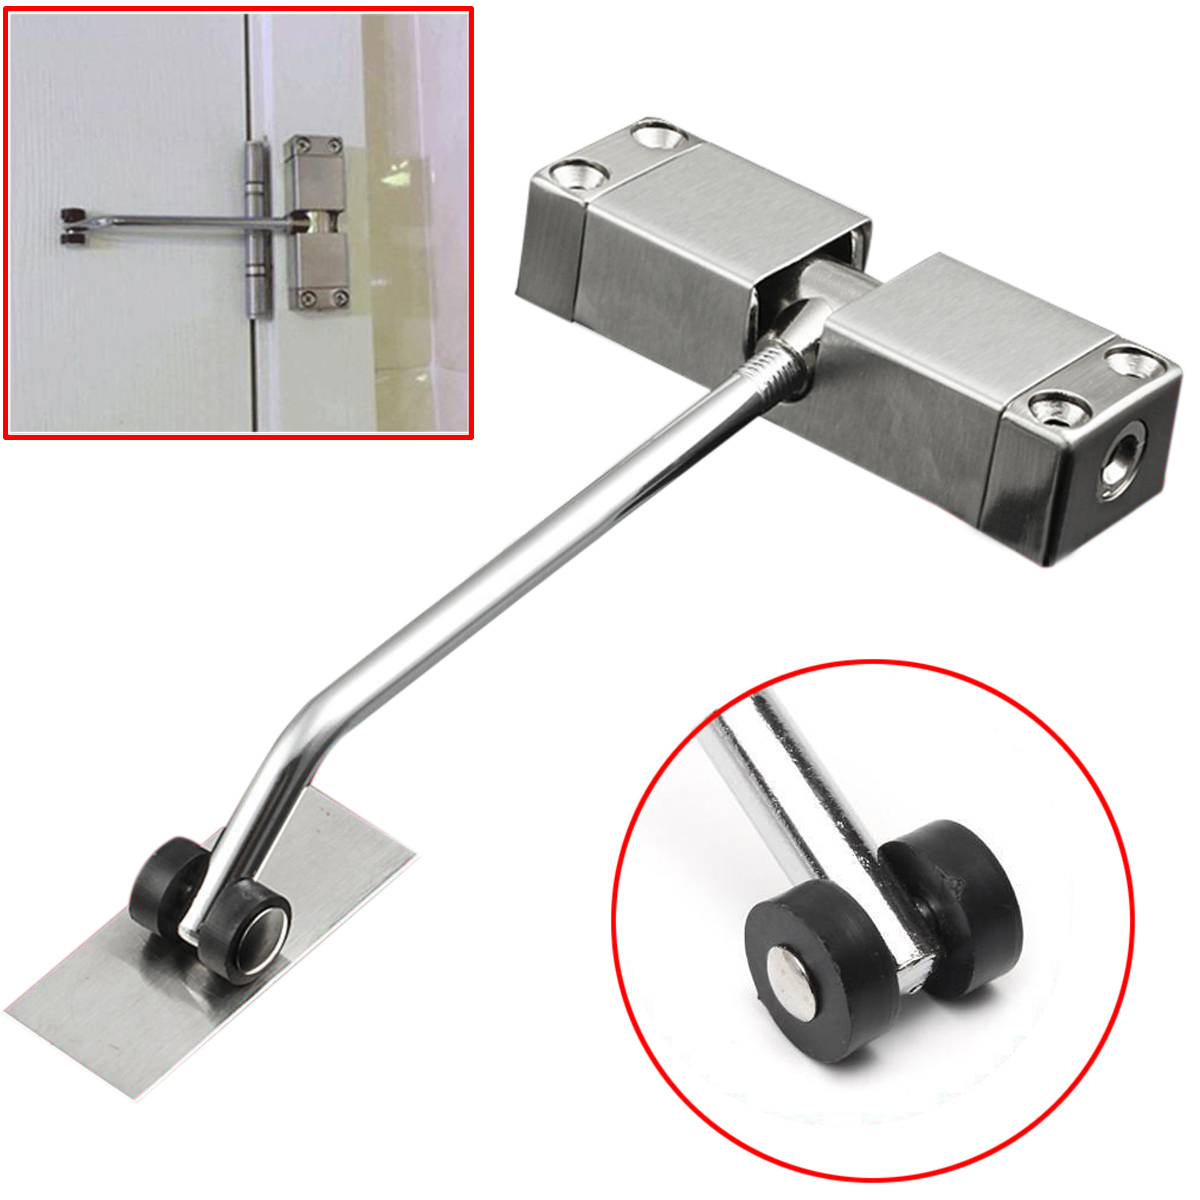 1pc Automatic Mounted Spring Door Closer Stainless Steel Adjustable Surface Door Closer 160x96x20mm 1pc automatic mounted spring door closer stainless steel adjustable surface door closer 160x96x20mm page 6